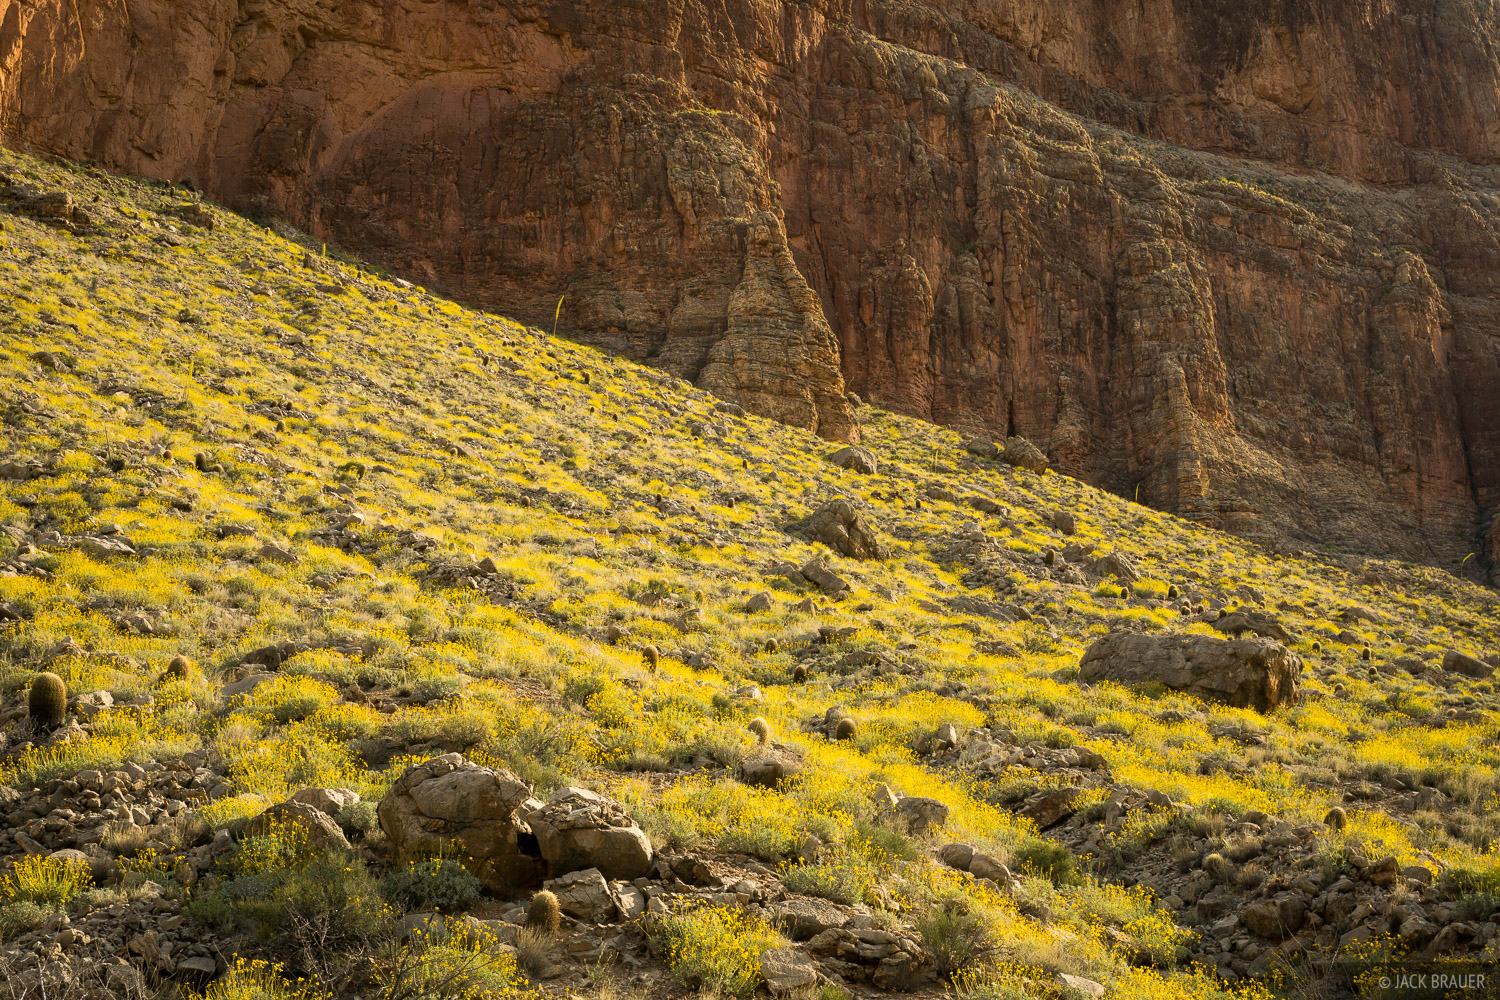 A canyon slope full of yellow wildflowers in April.